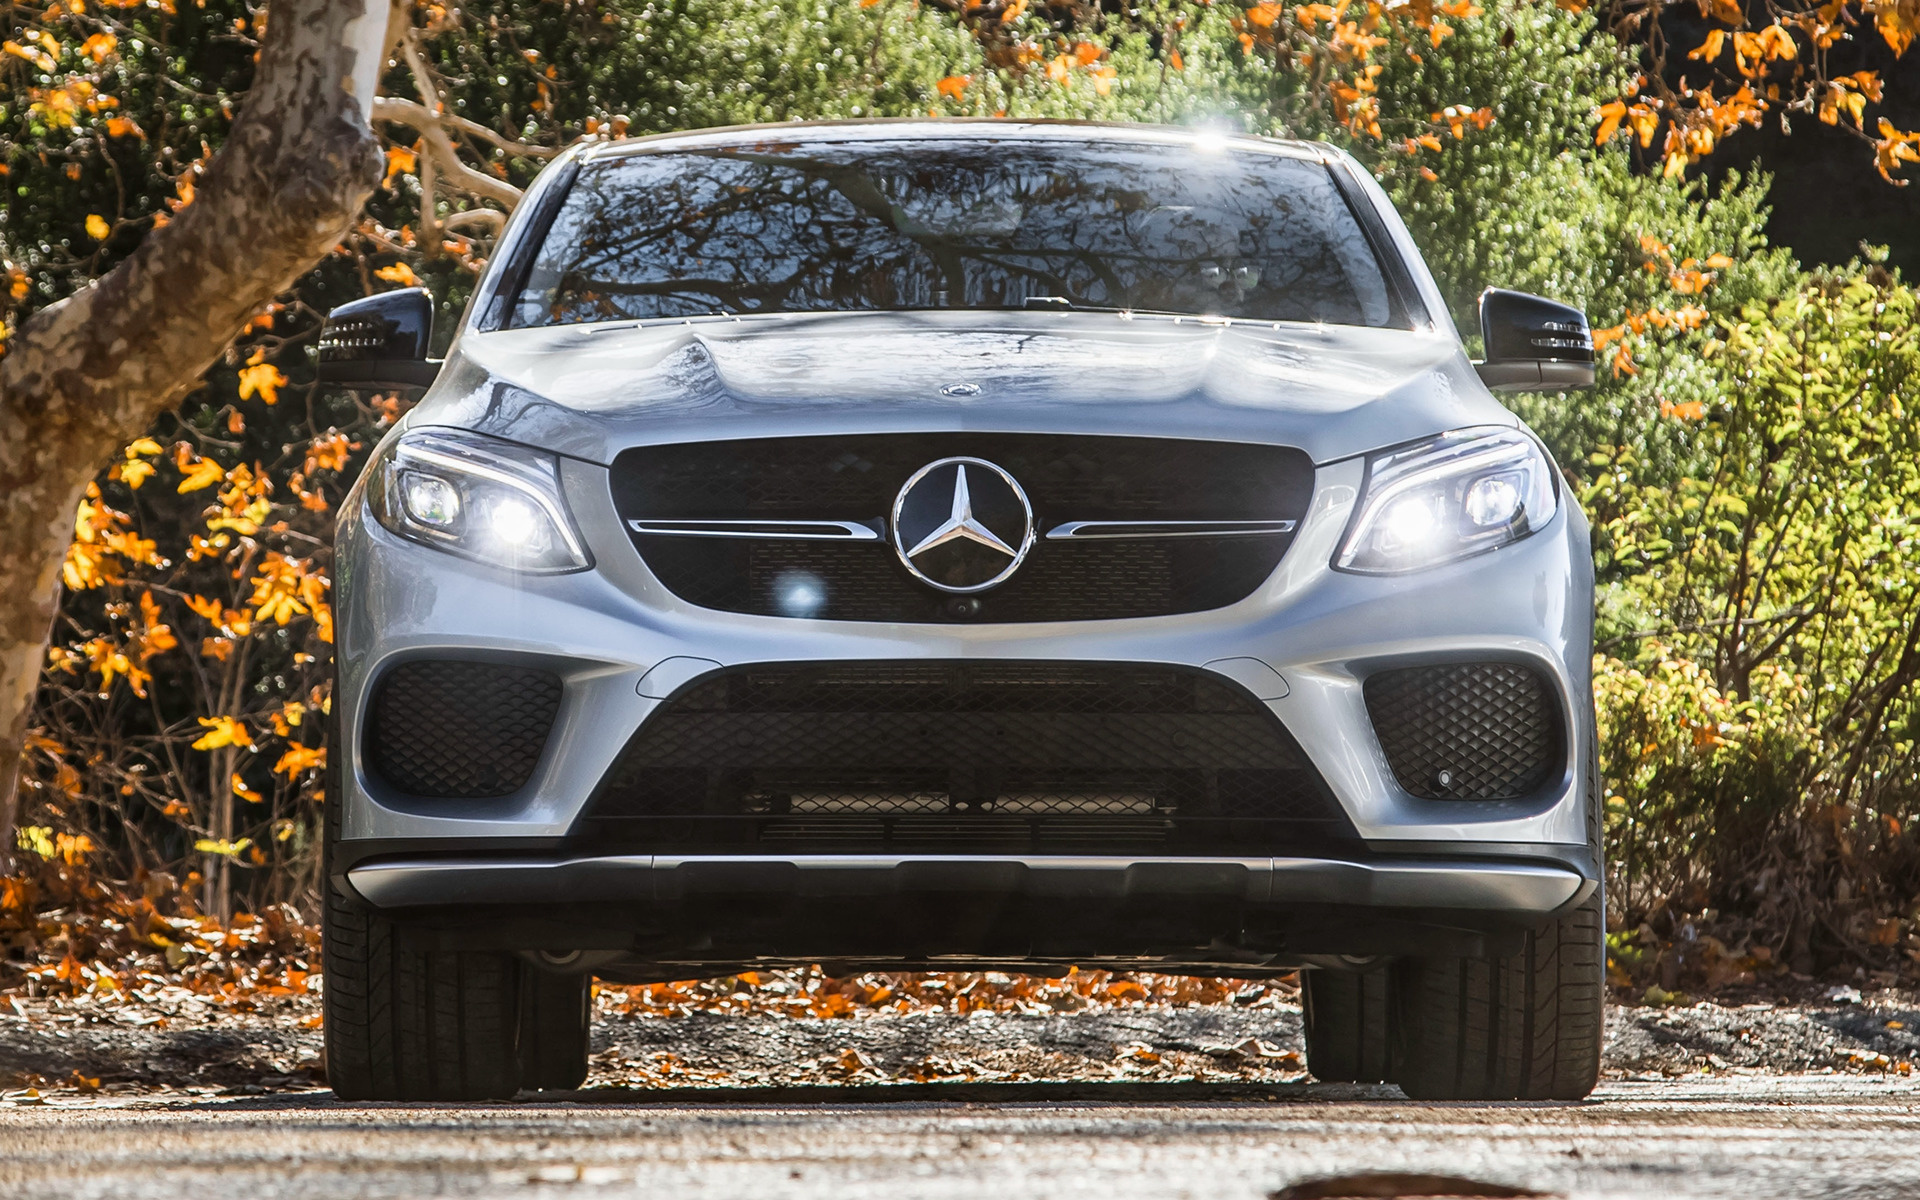 Mercedes-AMG GLE 43 Coupe (2017) US Wallpapers and HD Images - Car Pixel